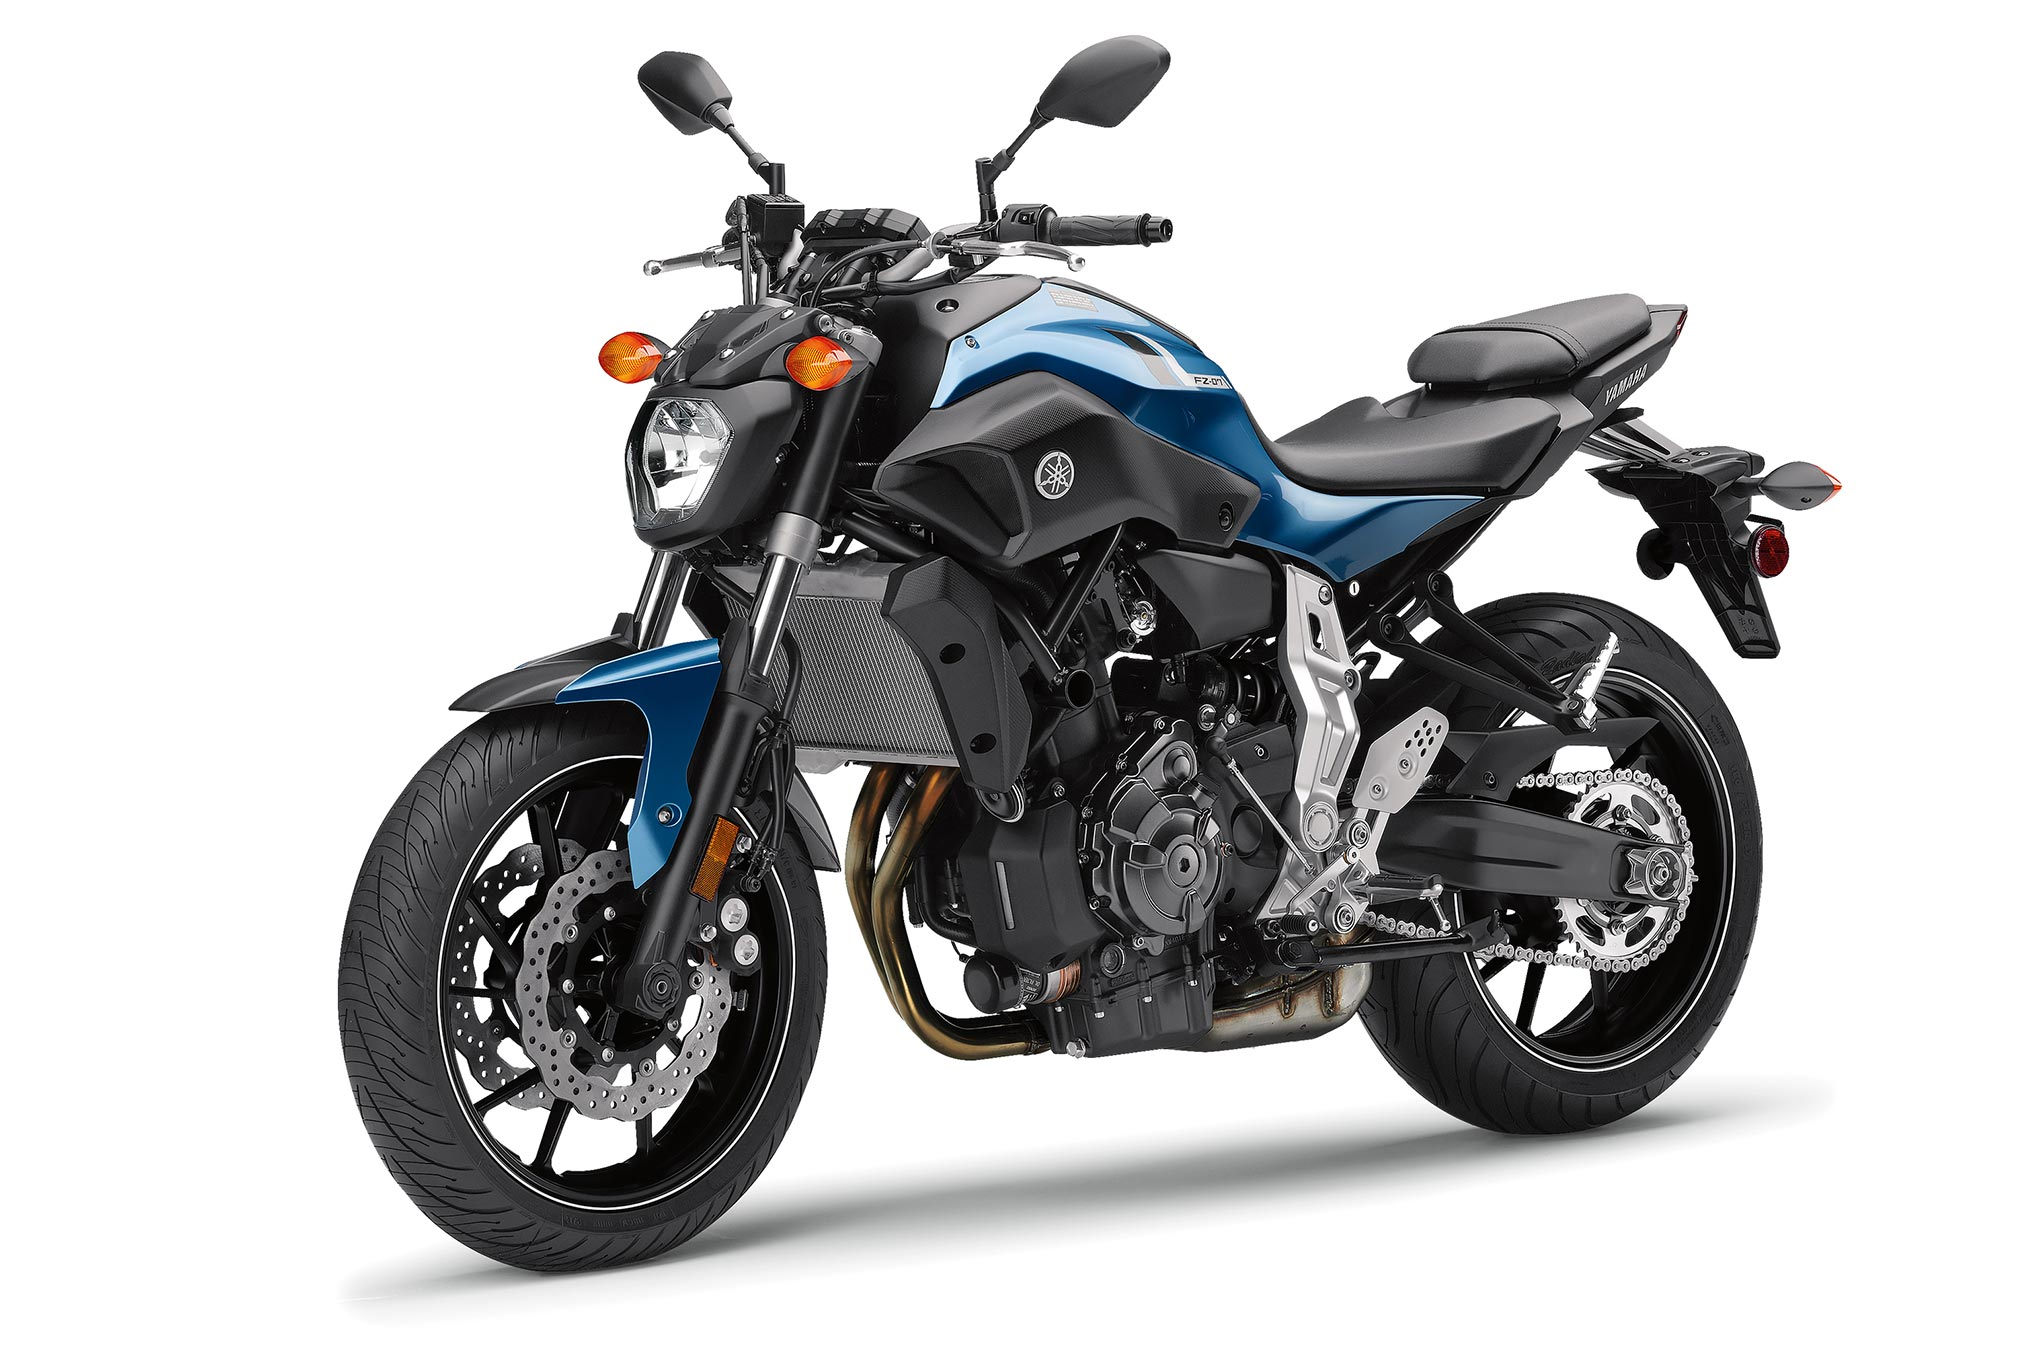 Fz Yamaha New Model Price